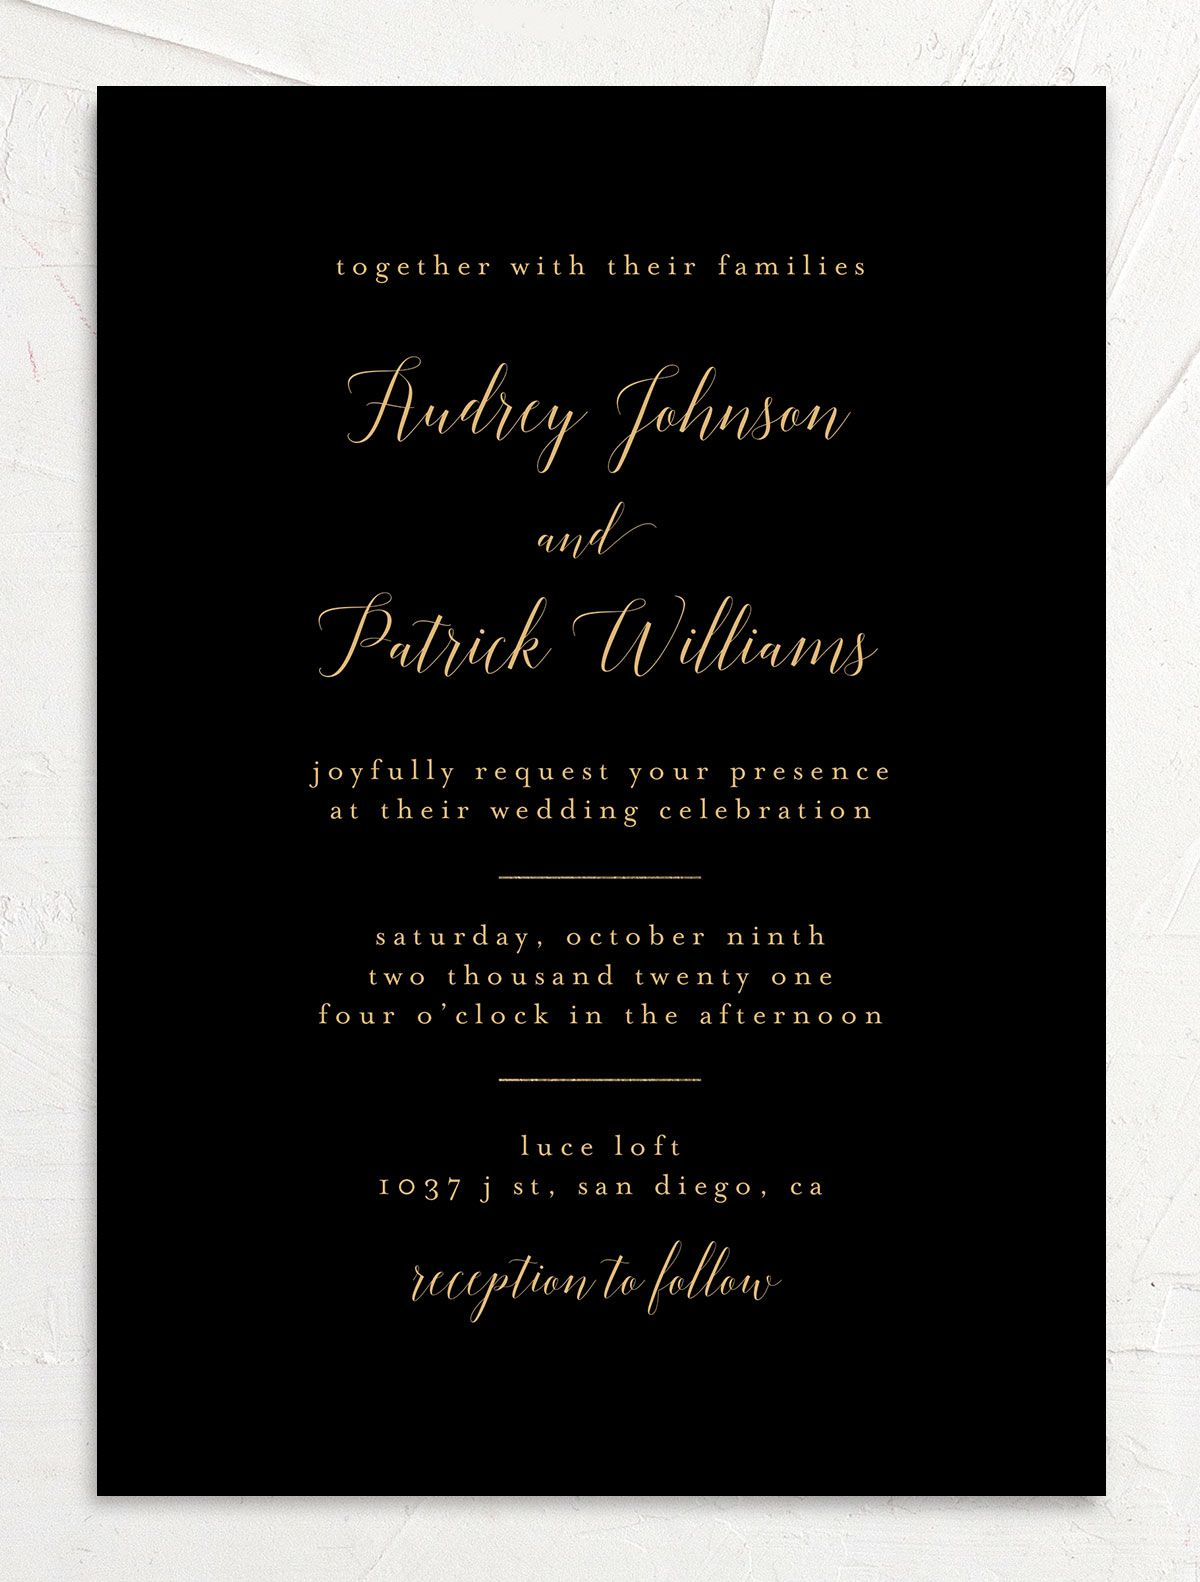 Marble and Gold Wedding Invitation front closeup in black